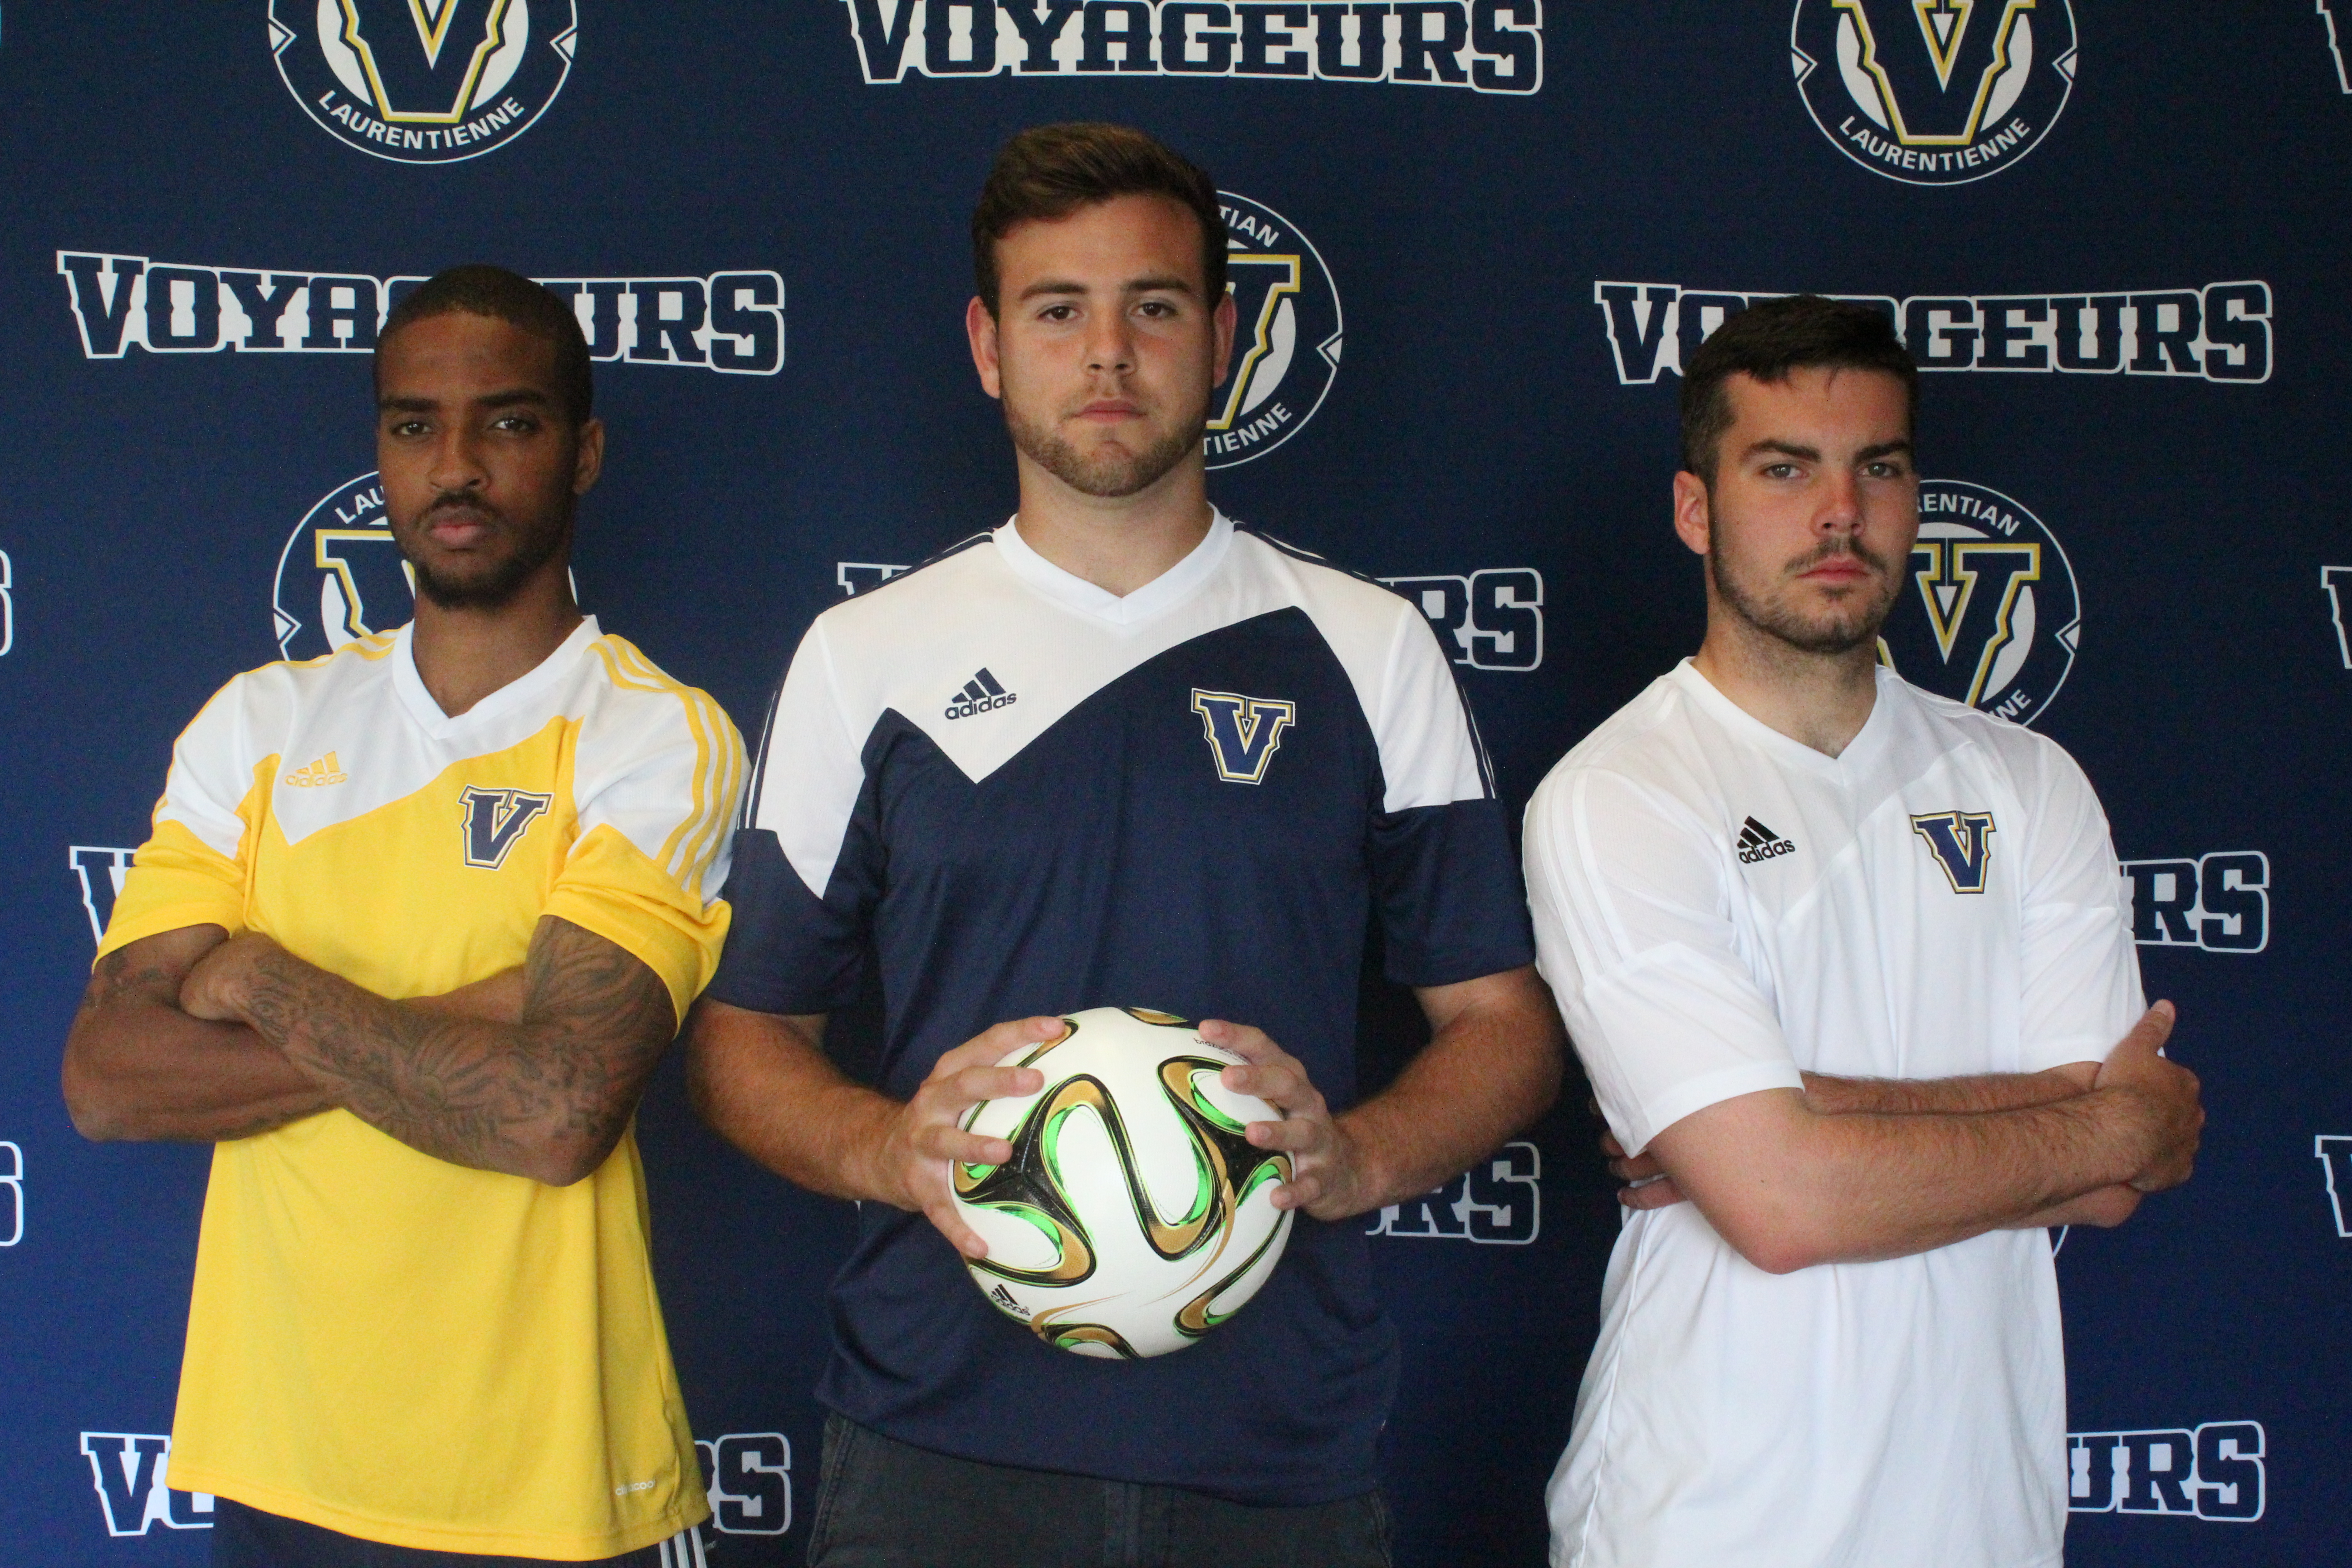 Pictured above (from left) Omar Allison, Duncan Jobson, Cameron Brooks. Photo by Gabriel Rodrigues.